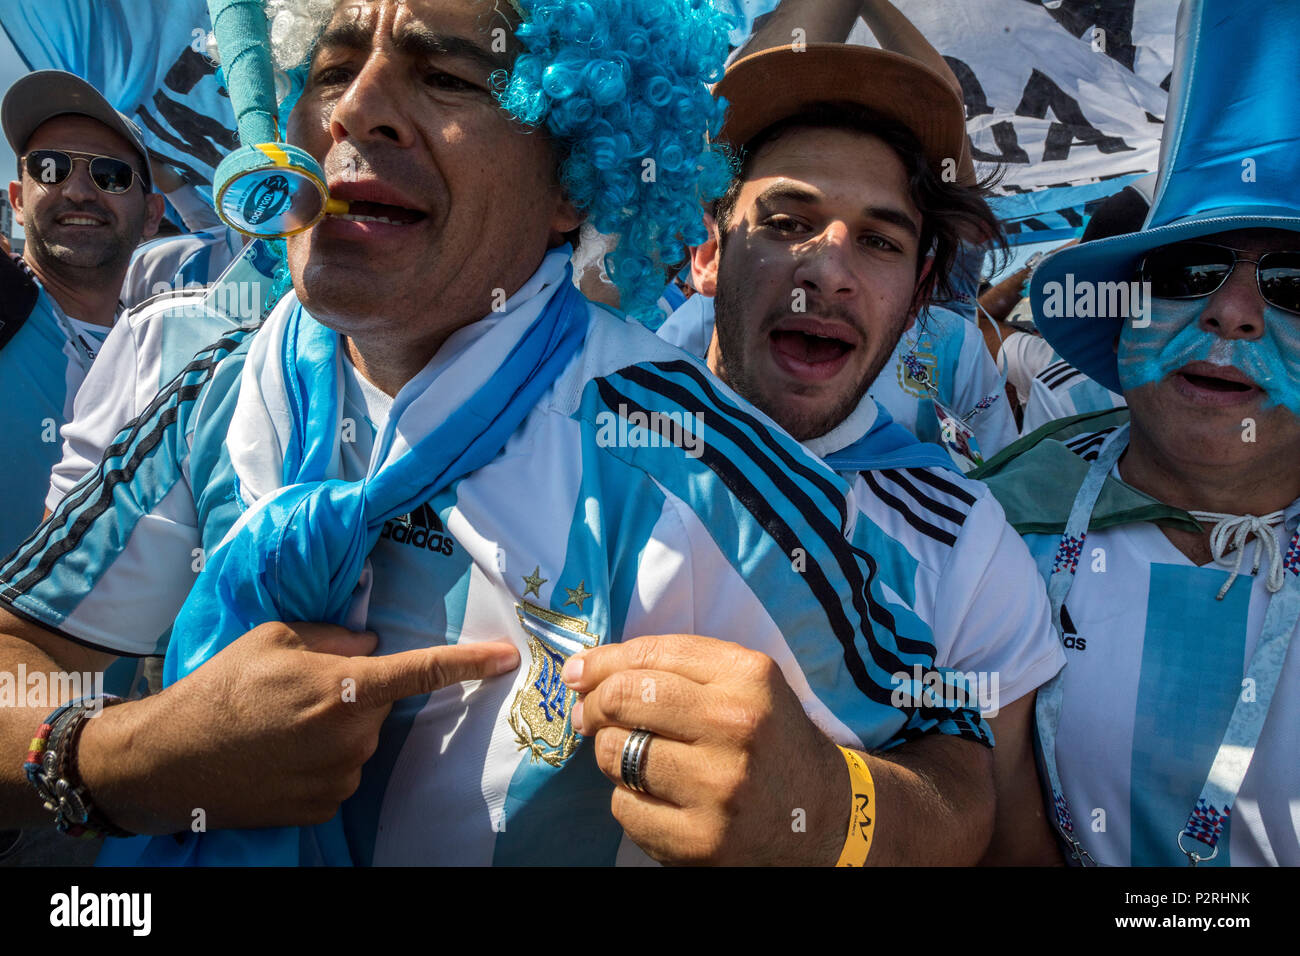 Moscow, Russia. 16th June, 2018. Argentine fans before start the 2018 FIFA World Cup Russia Group D match between Argentina and Iceland at the Spartak Stadium in Moscow, Russia Credit: Nikolay Vinokurov/Alamy Live News - Stock Image